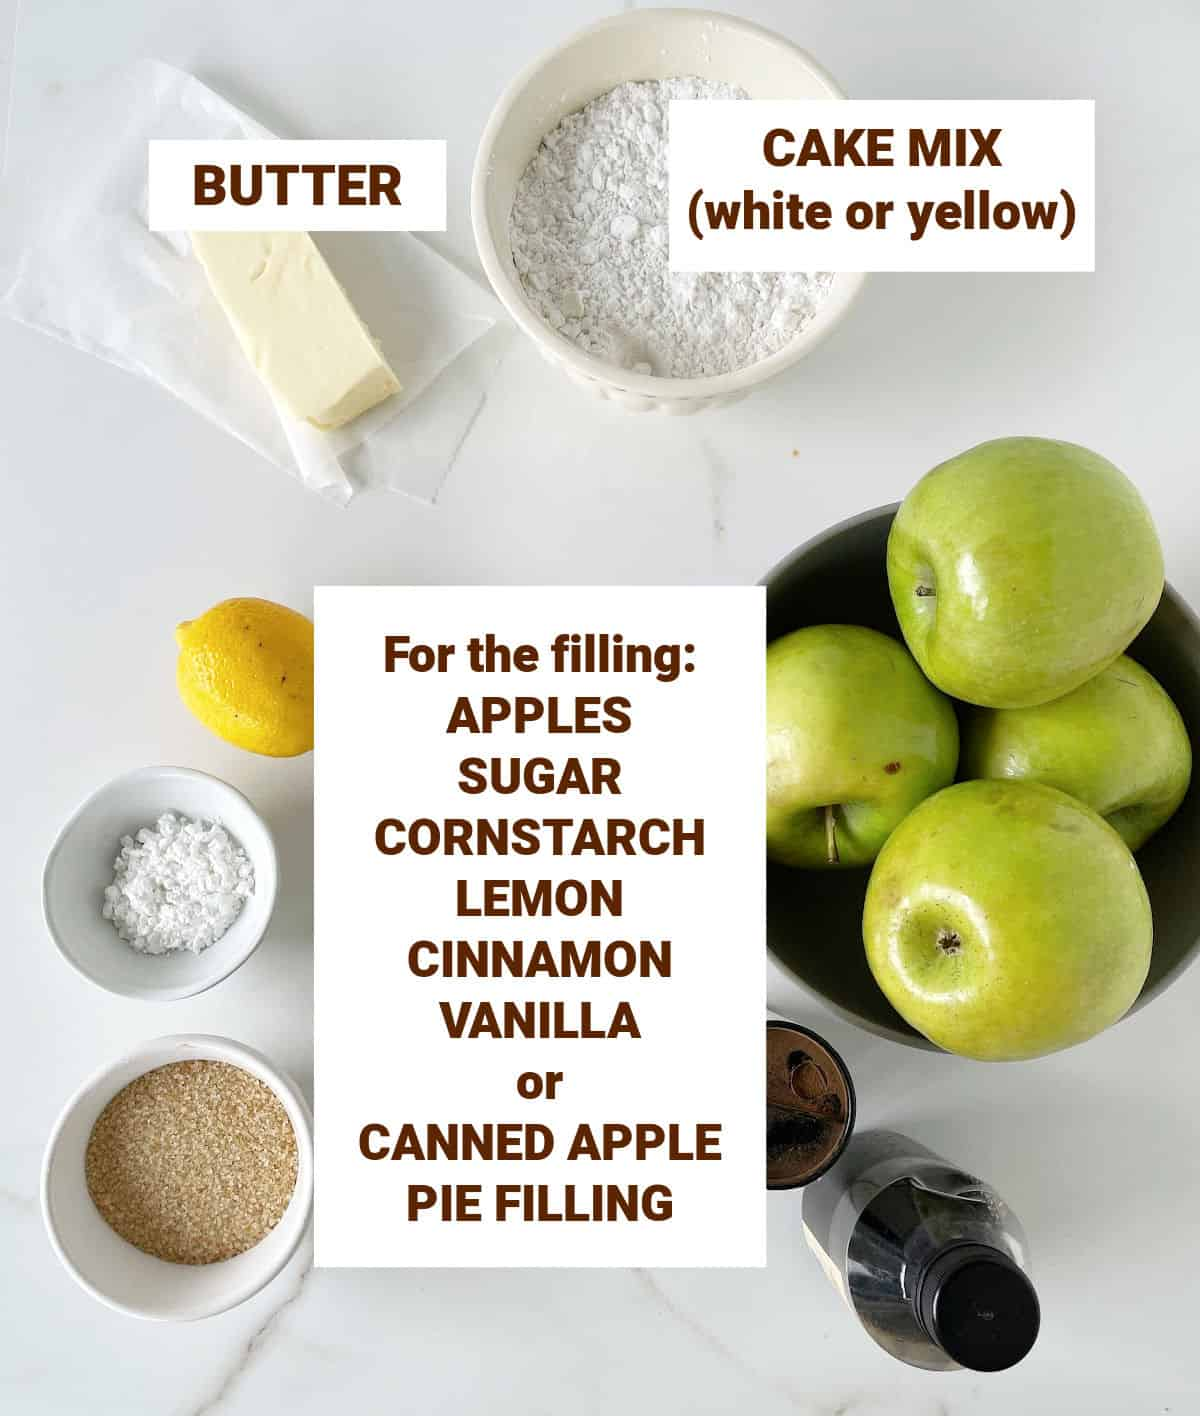 Ingredients for apple cake on white marble surface, including lemon, butter, spices, sugar, brown text overlay